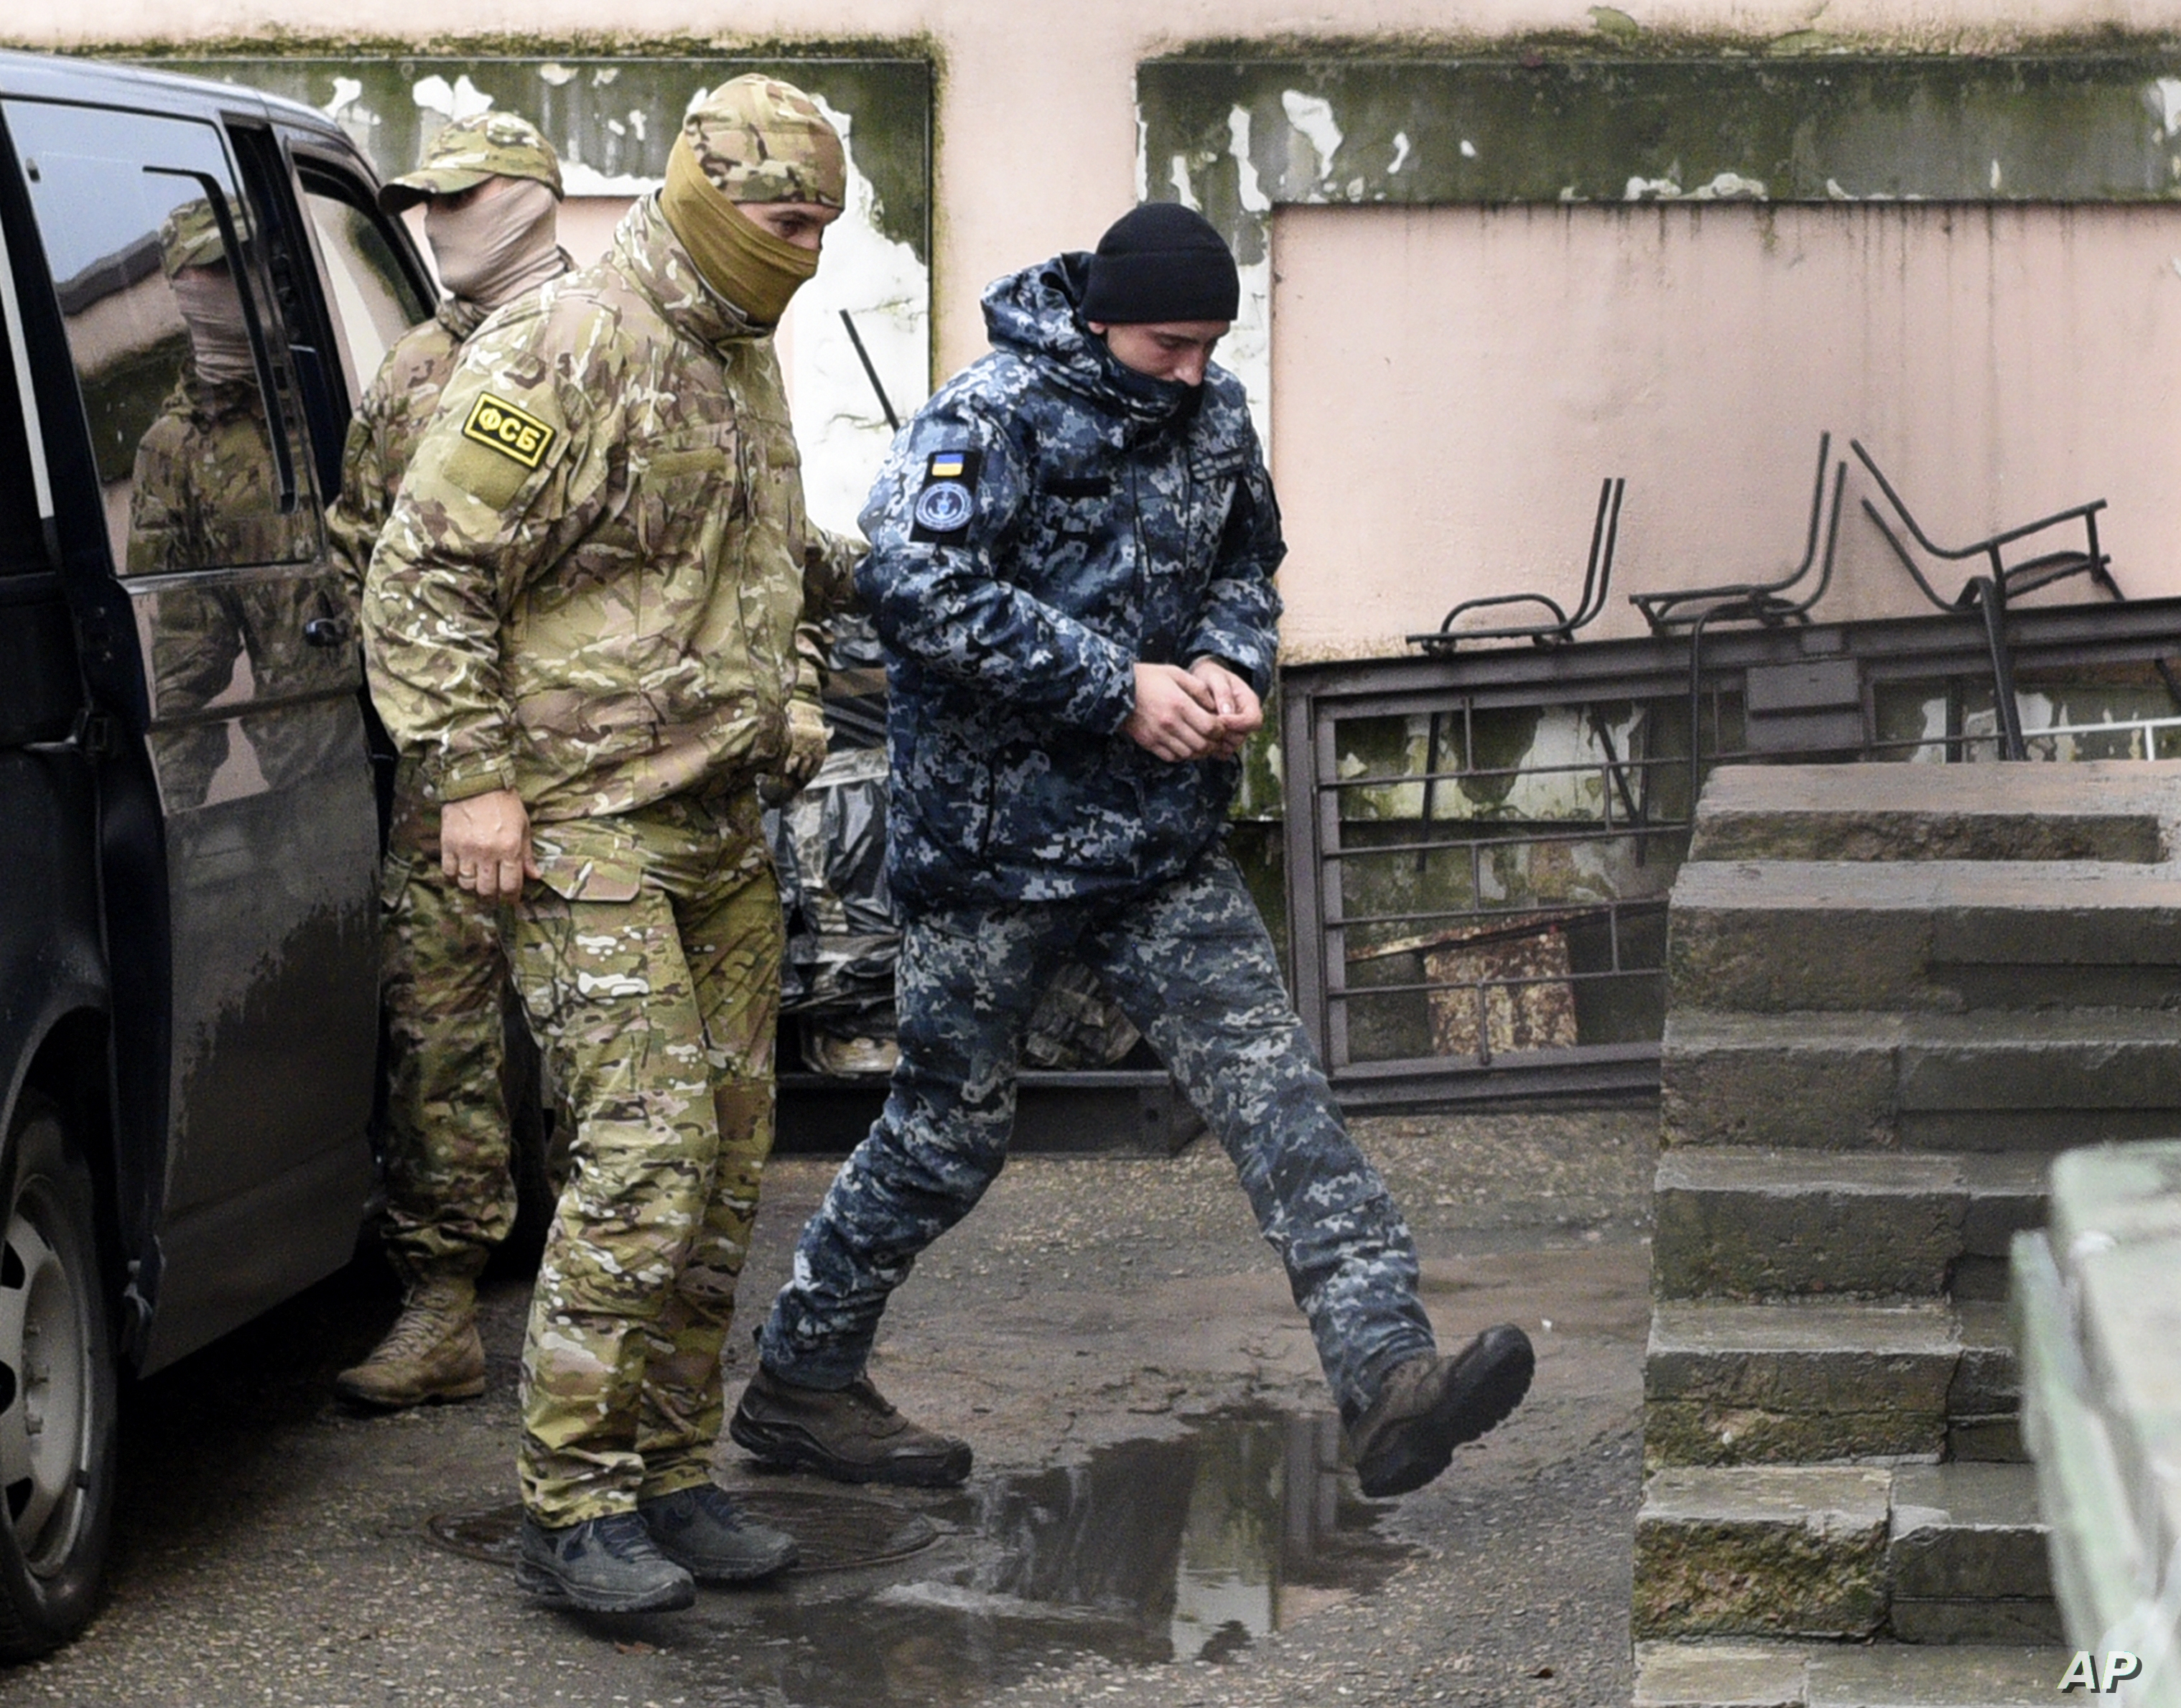 A Ukrainian sailor, right, is escorted by Russian intelligence agency FSB officer to a court room in Simferopol, Crimea, Tuesday, Nov. 27, 2018. A Crimean court has ordered one of the Ukrainian seamen captured by Russia at the weekend held in…